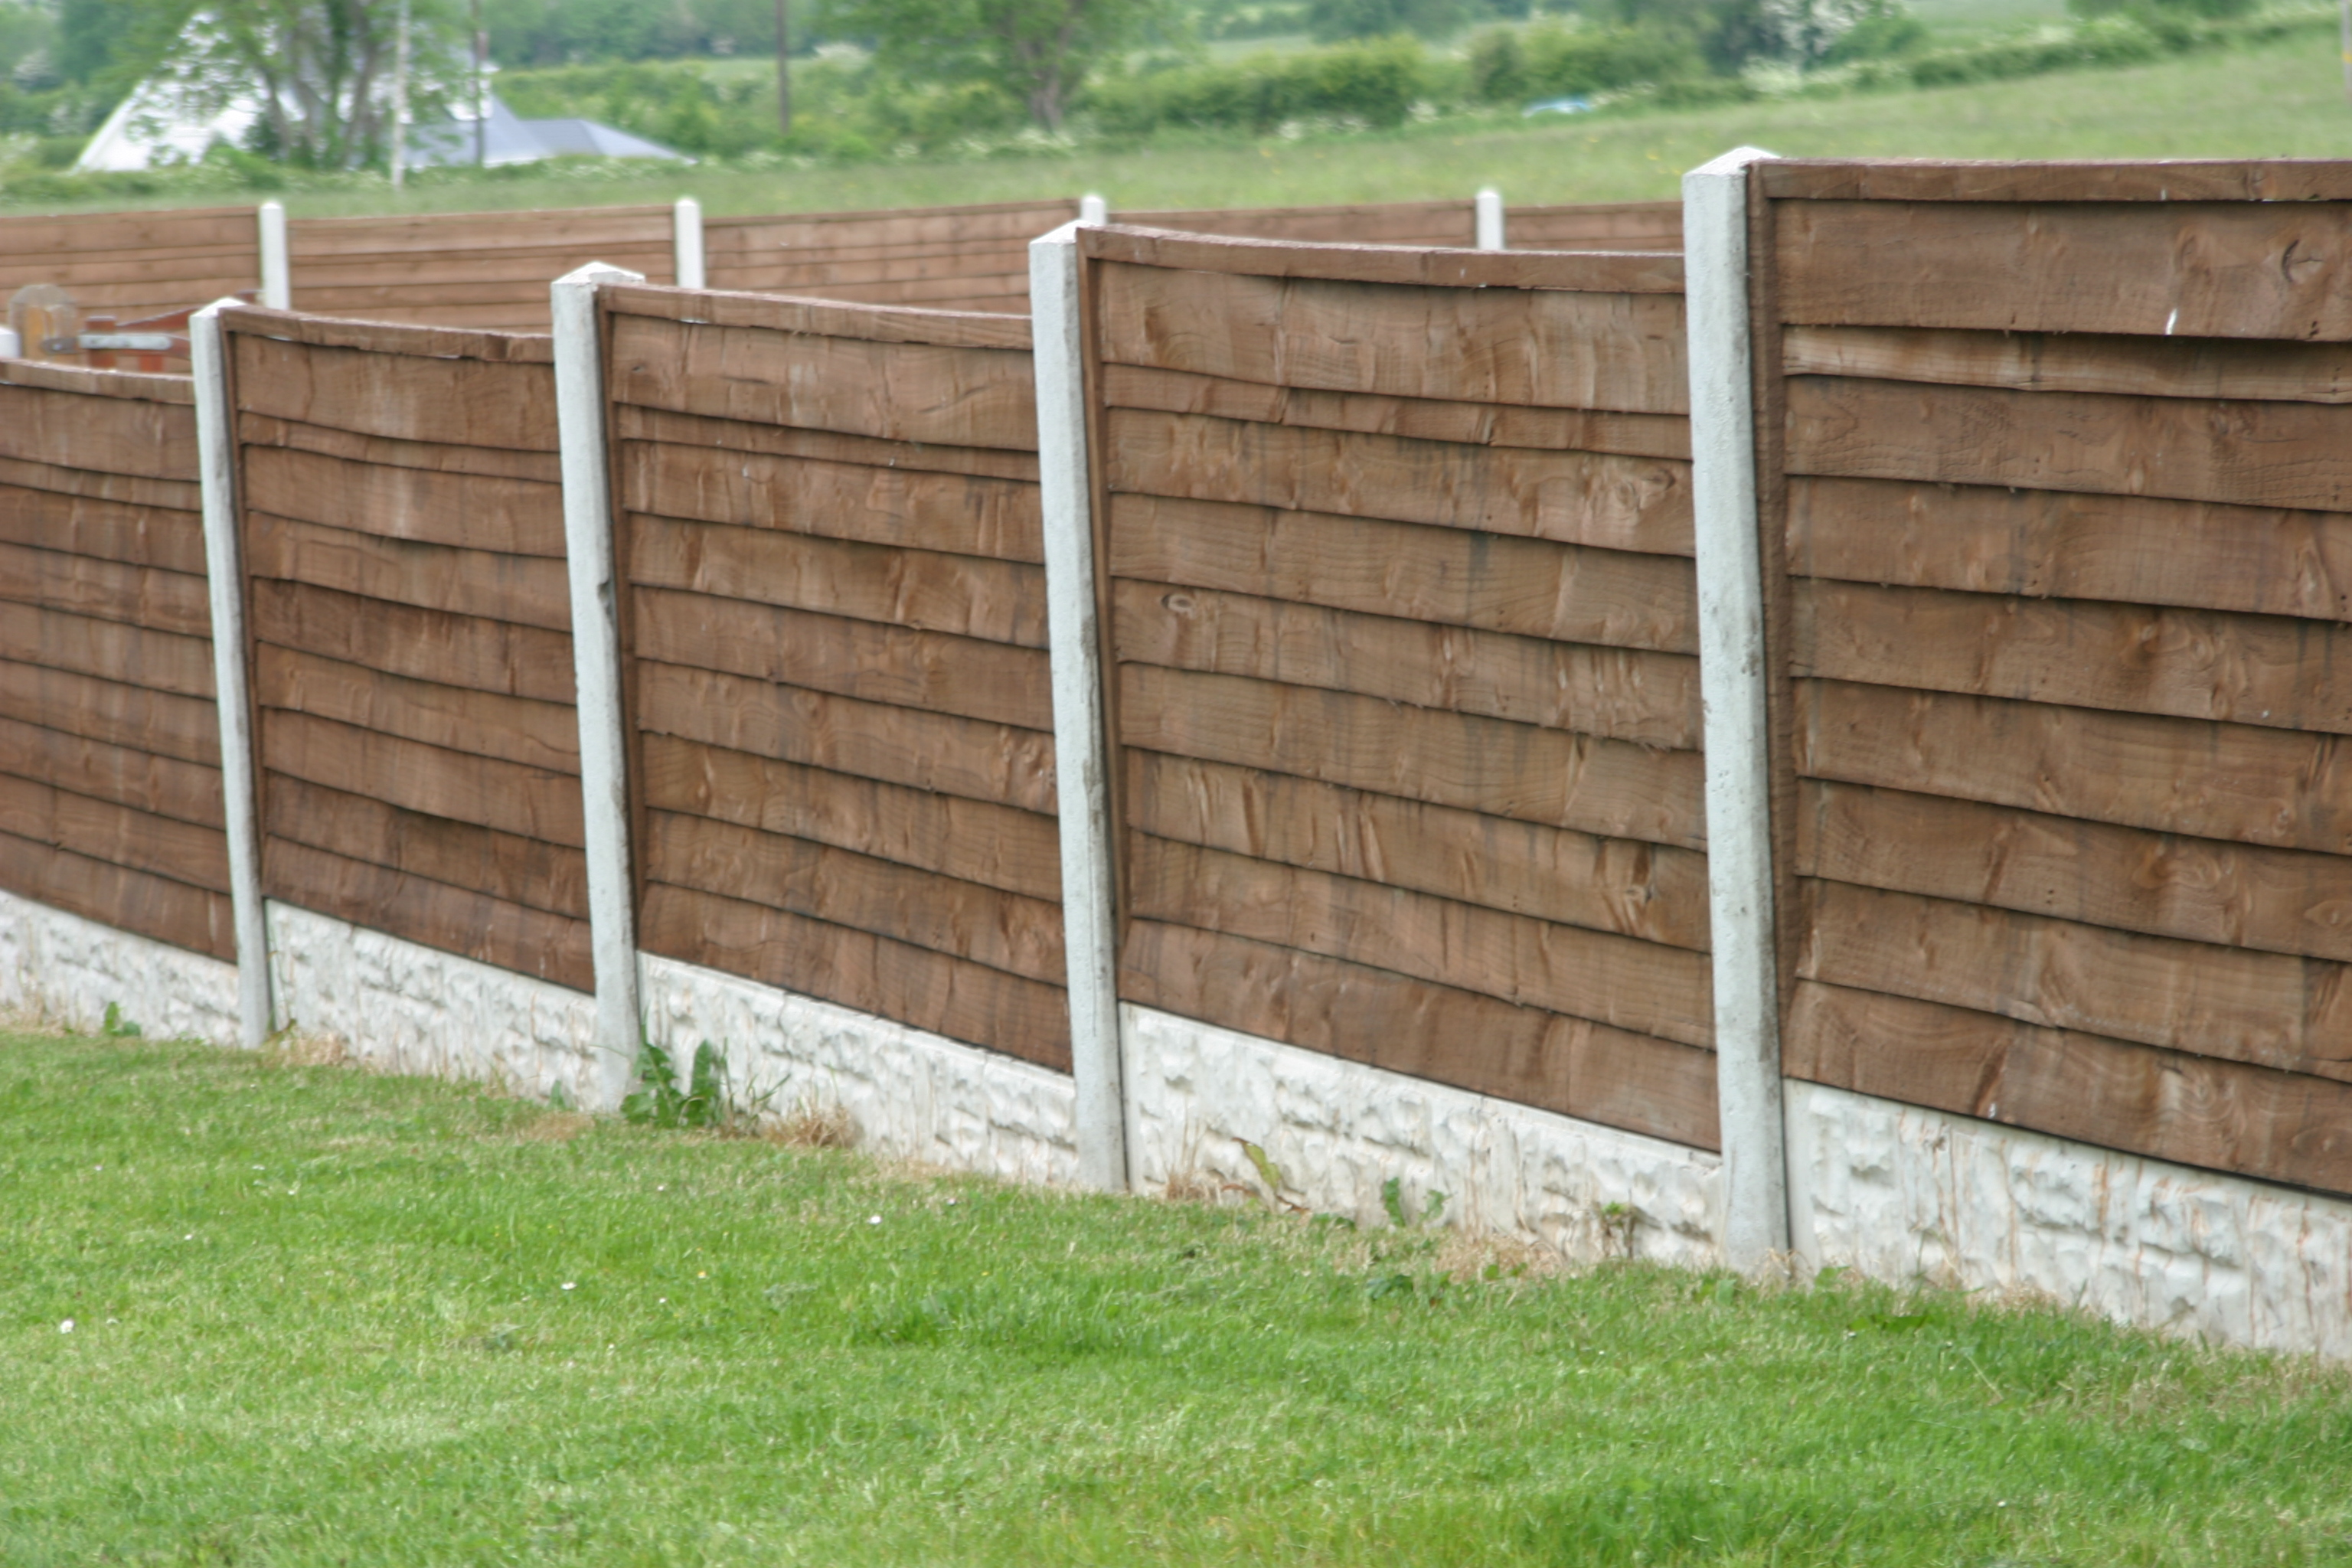 Concrete post timber panel fencing frs fencing - Your guide to metal fence panels for privacy and safety ...